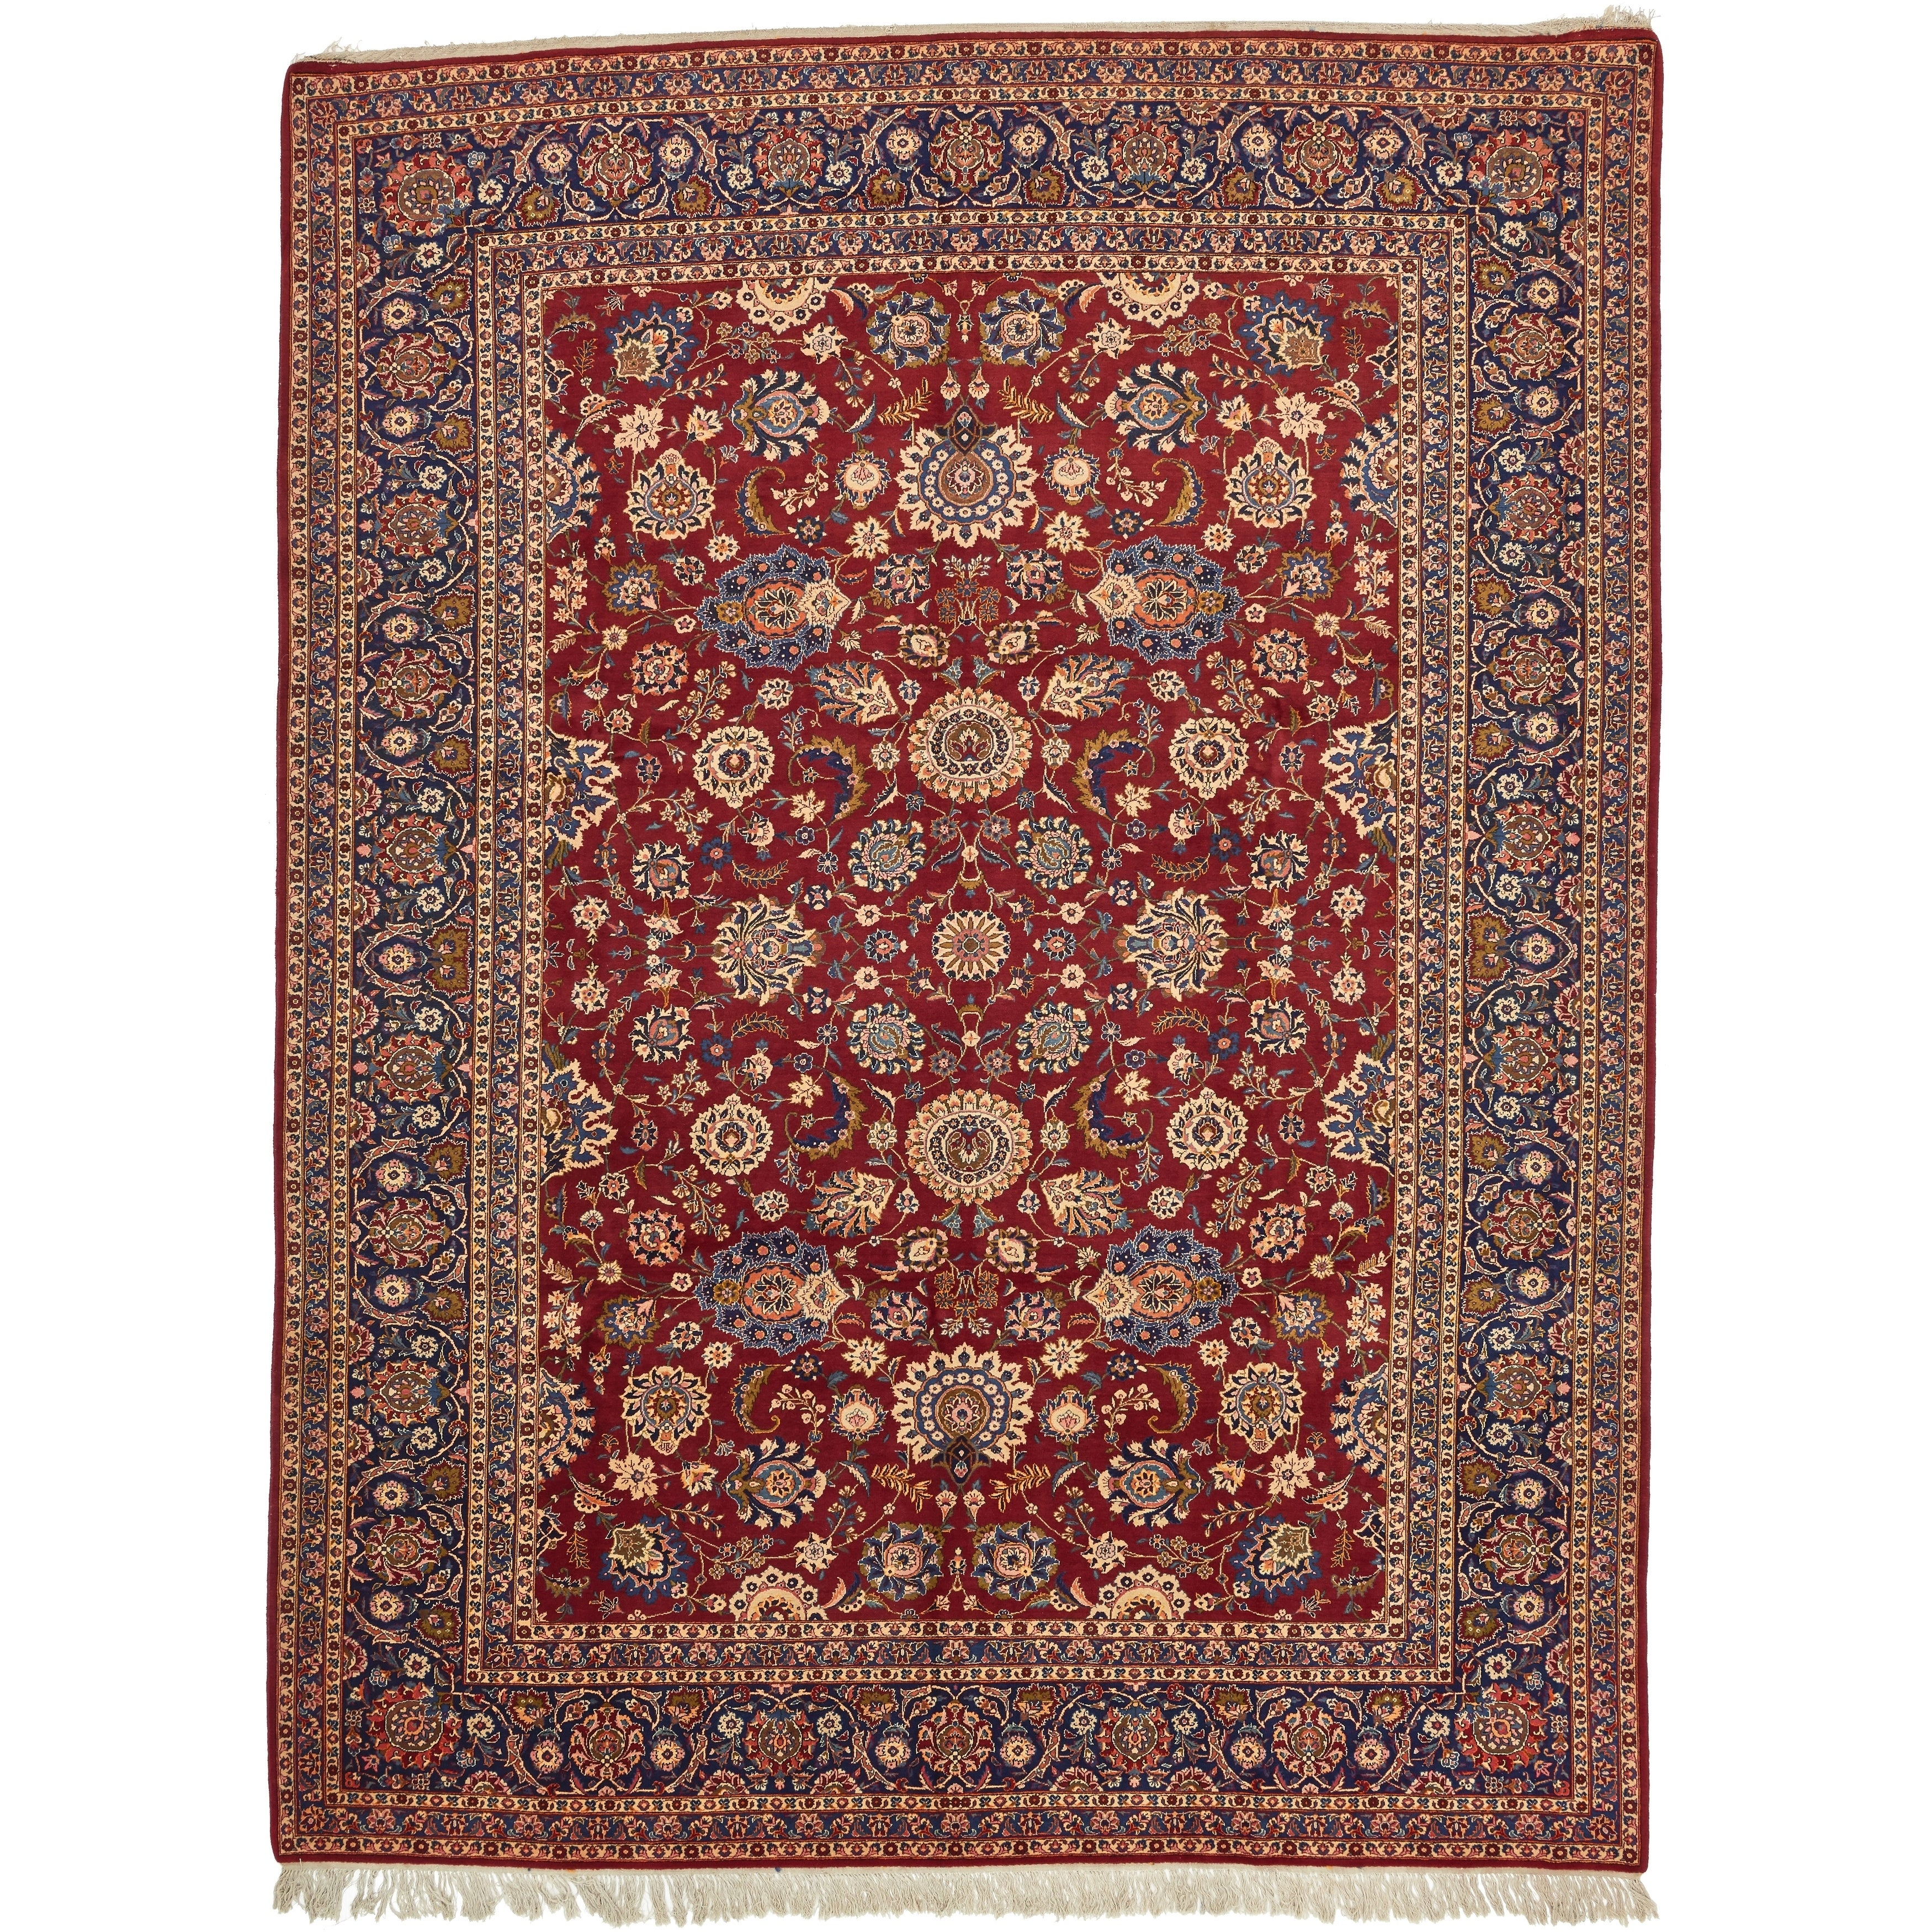 Hand Knotted Kashan Antique Wool Area Rug - 10 6 x 14 (Red - 10 6 x 14)